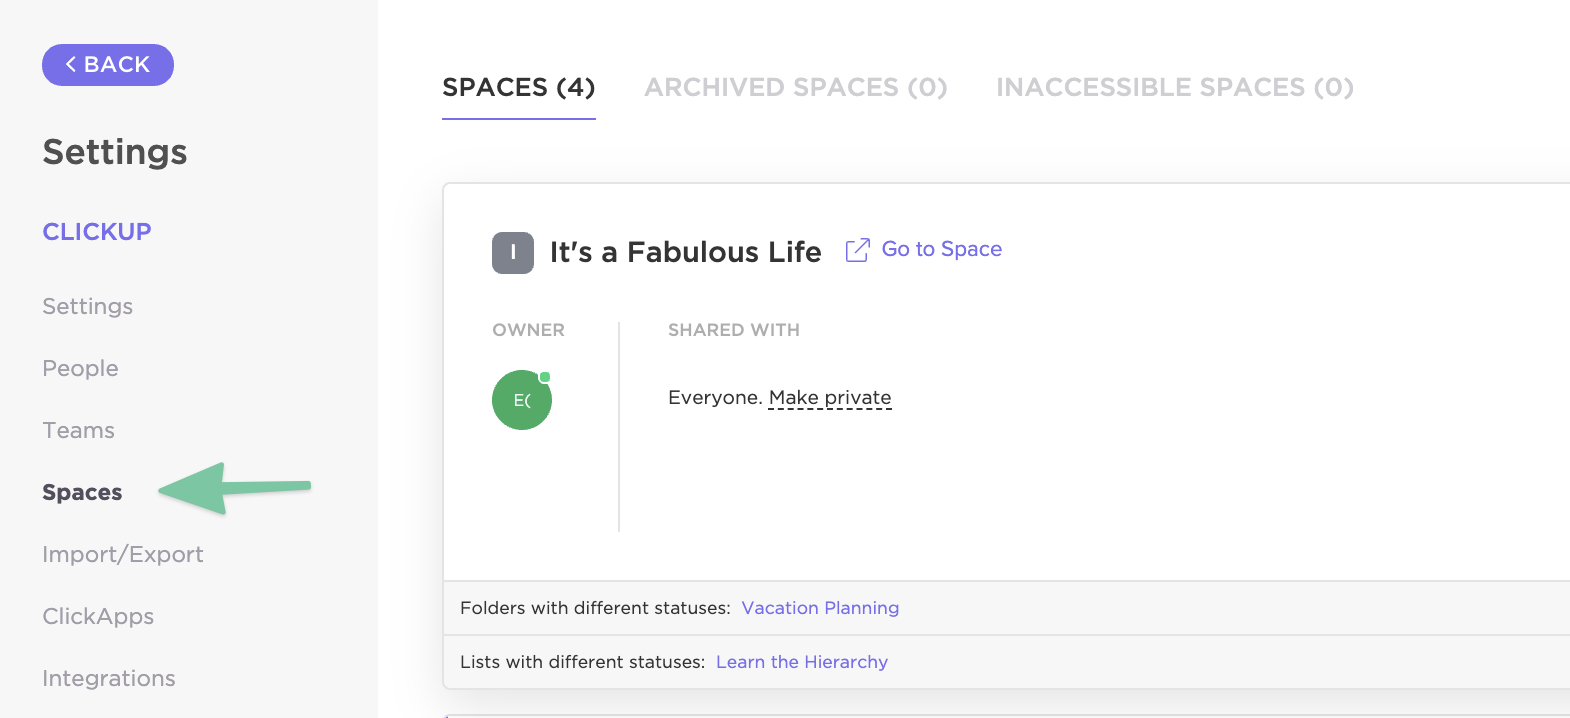 Settings sidebar menu with Spaces selected and options to see Spaces, Archived Spaces, Inaccessible Spaces